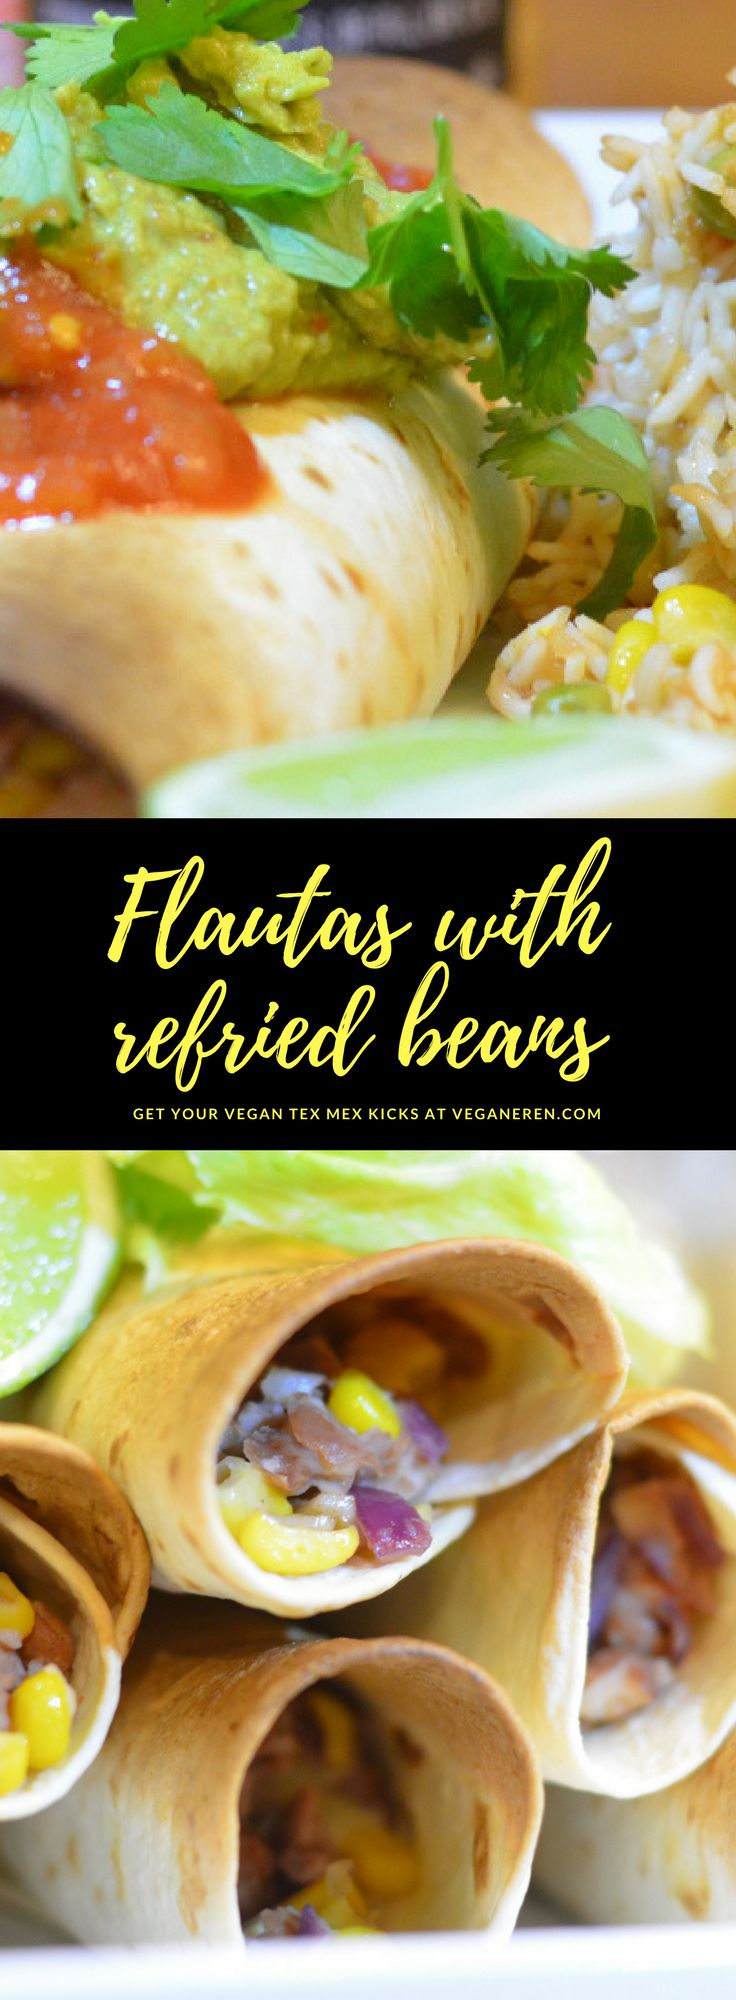 "We love Mexican food, and have it at least 1-2 times a week, sometimes more. Friday is always ""tacoday"" here in our house, especially the weekends when we have all the children statying with us. We do like to vary a bit, and here's one of our new favorites - flautas! Flautas are baked tortilla rolls that are crispy on the outside and have a delicious fill inside. Here again inspired by the book ""Thug Kitchen"" and a variant of their bean stew, corn and jalapenos. Our own wonderful twist"